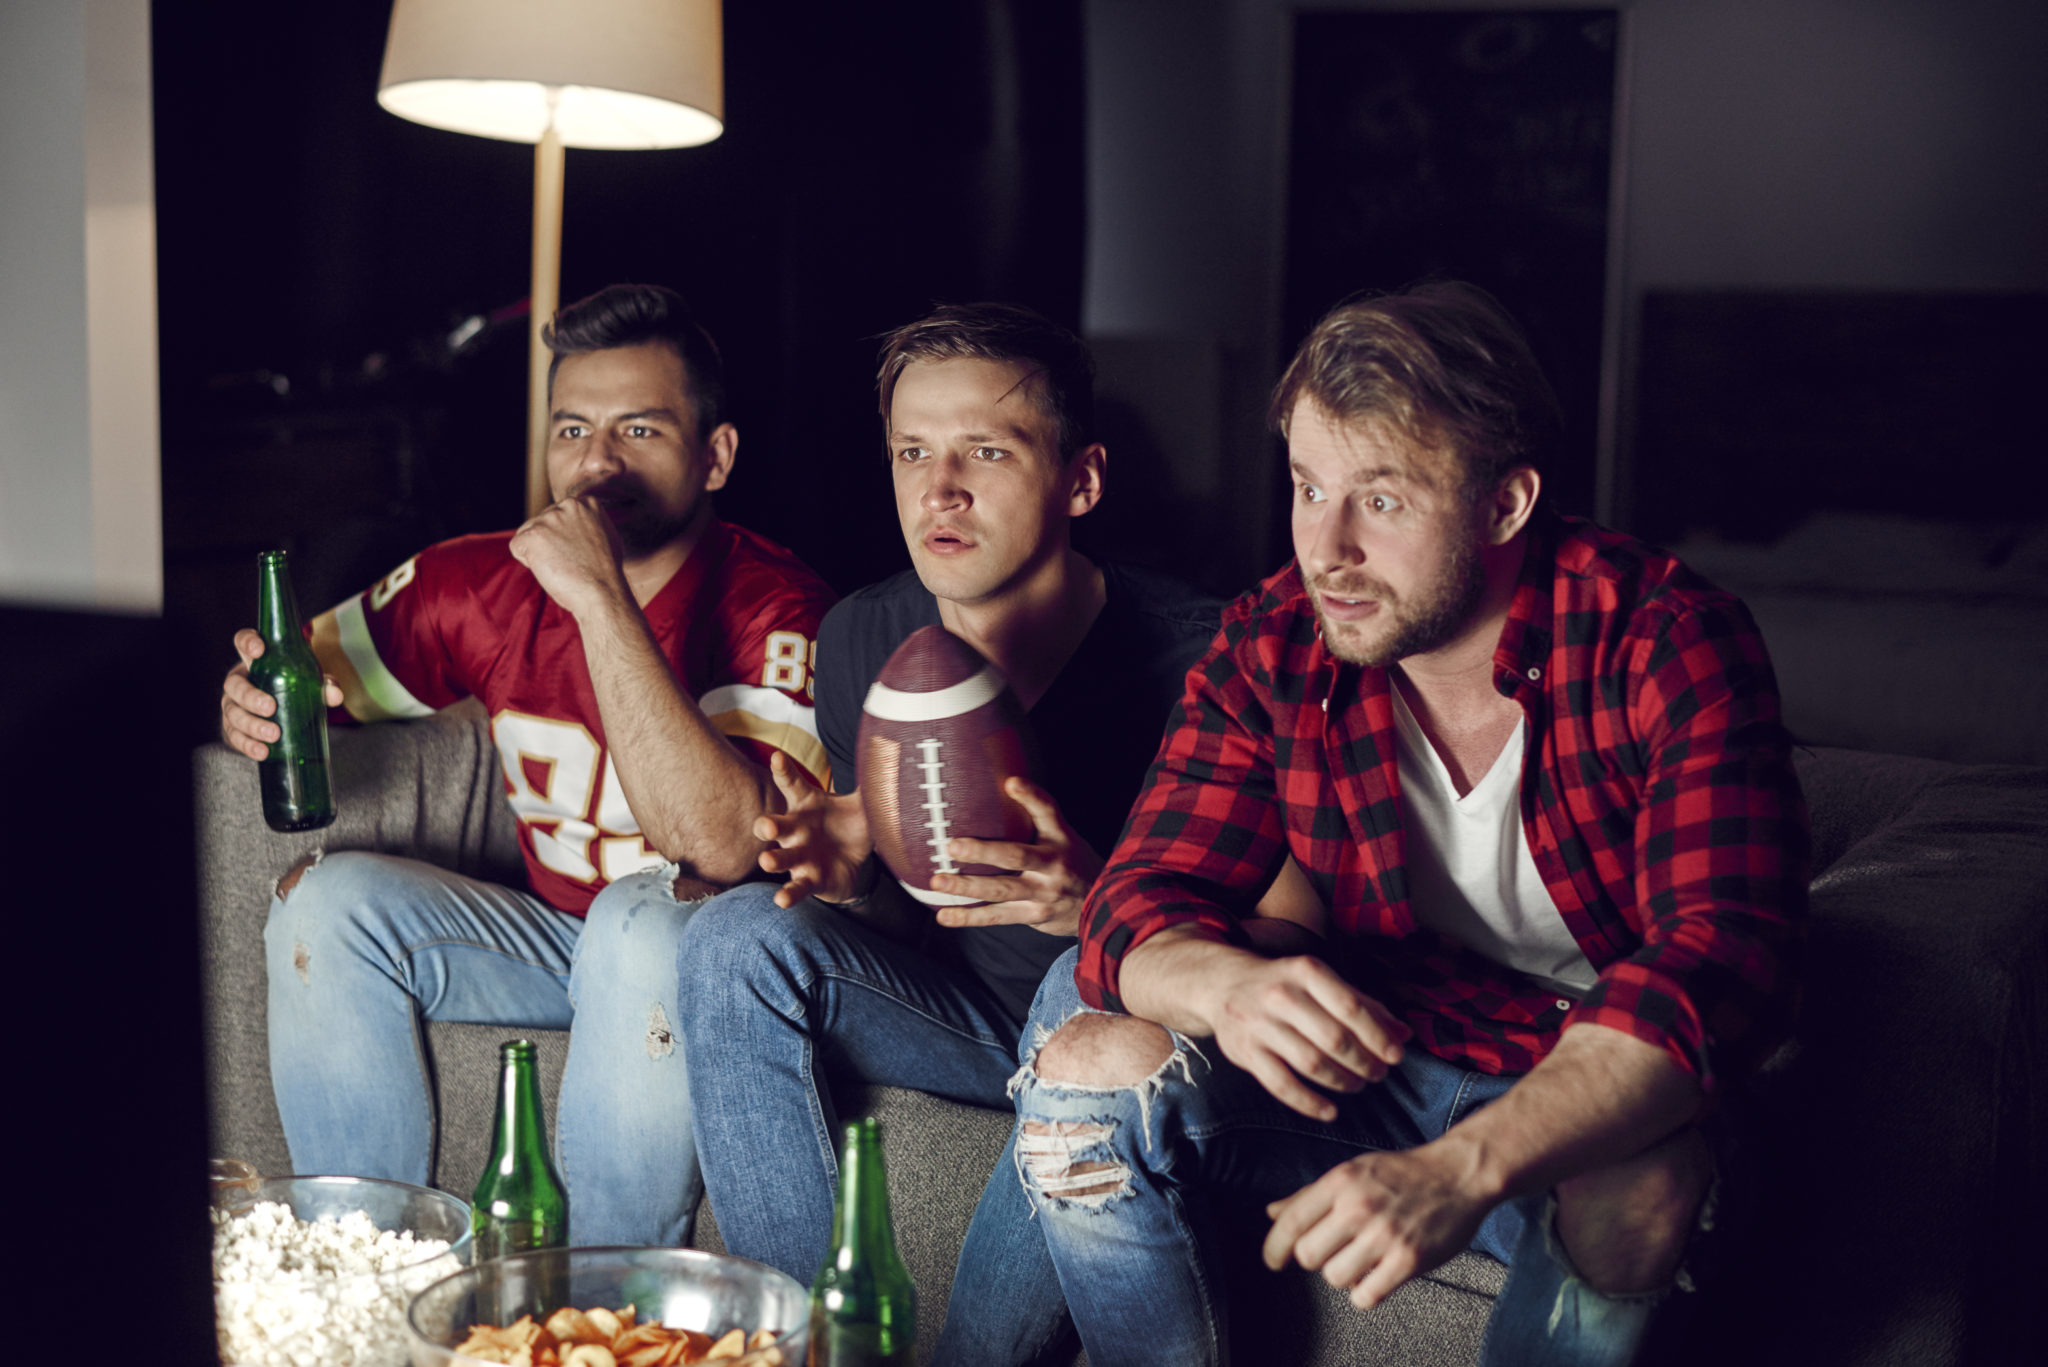 Football fans watching intensely